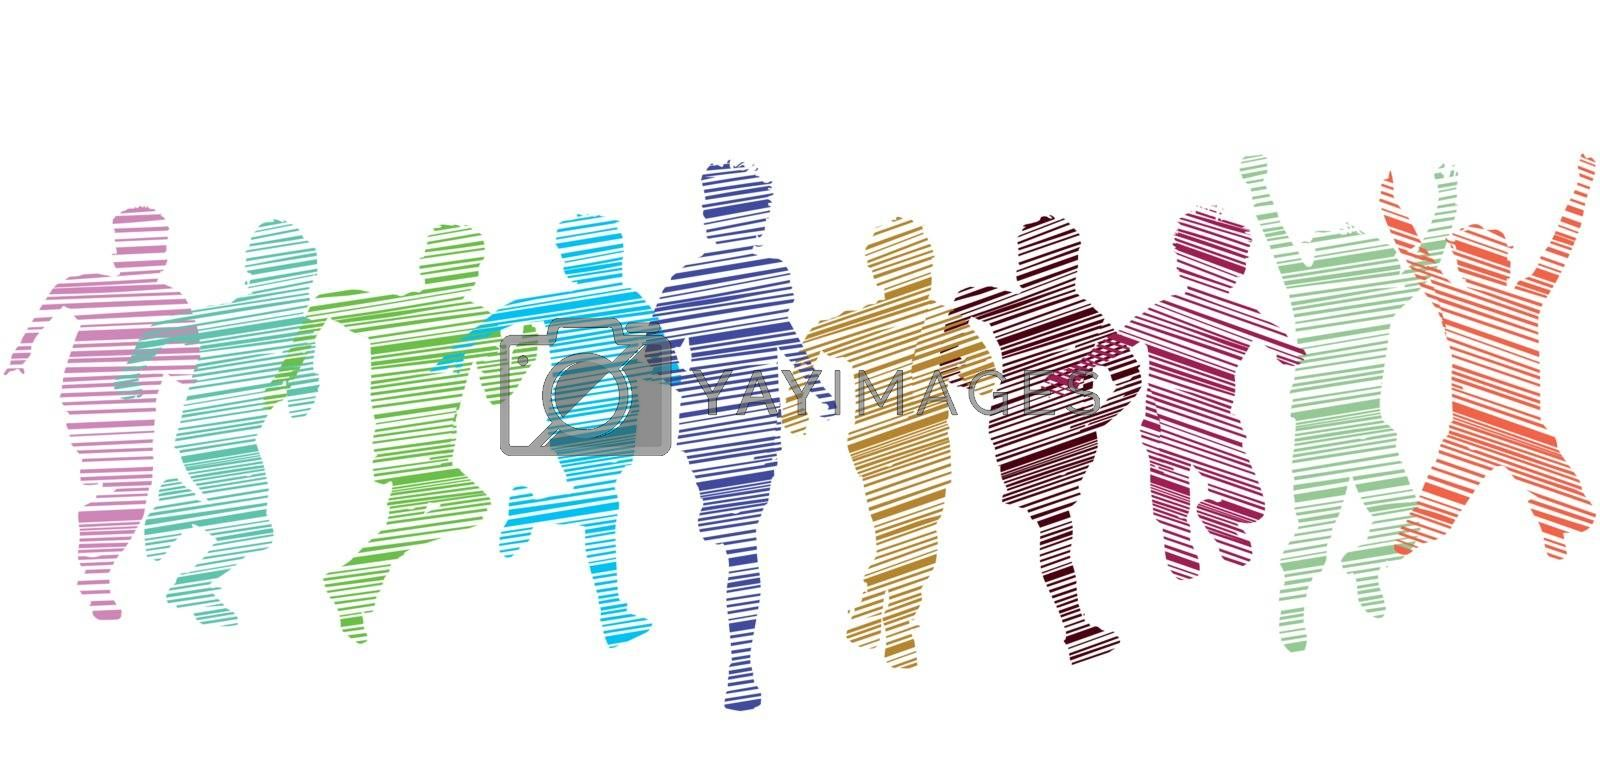 Royalty free image of A group of kid run and have fun, illustration-Isolated by scusi